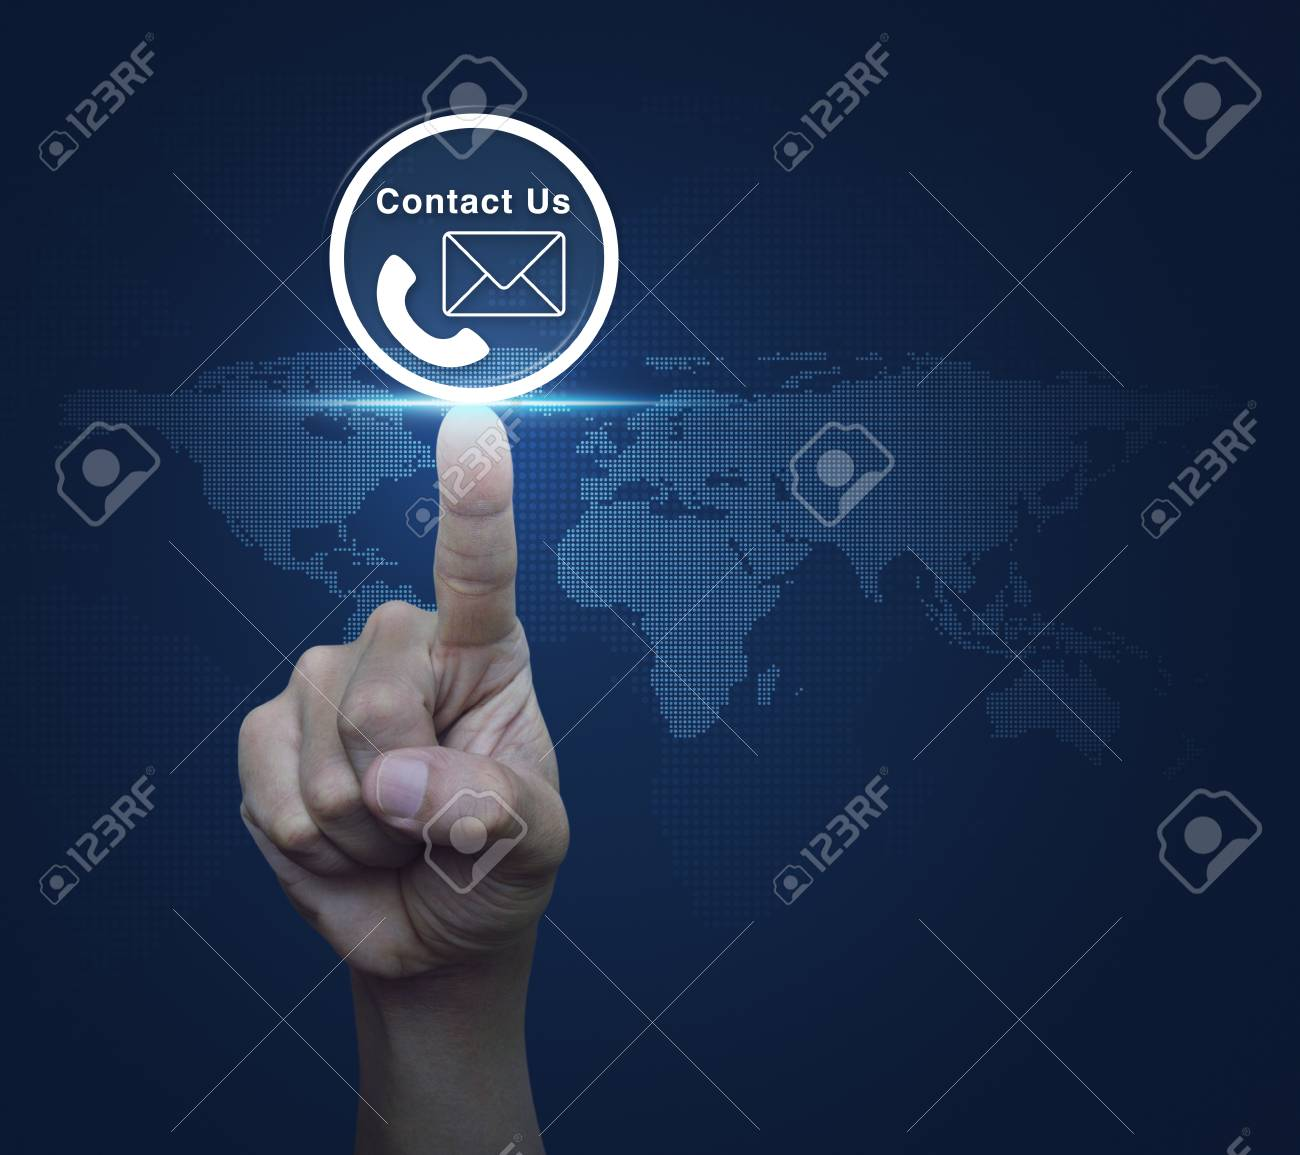 Hand pressing telephone and mail icon button over digital world hand pressing telephone and mail icon button over digital world map blue background contact us gumiabroncs Images